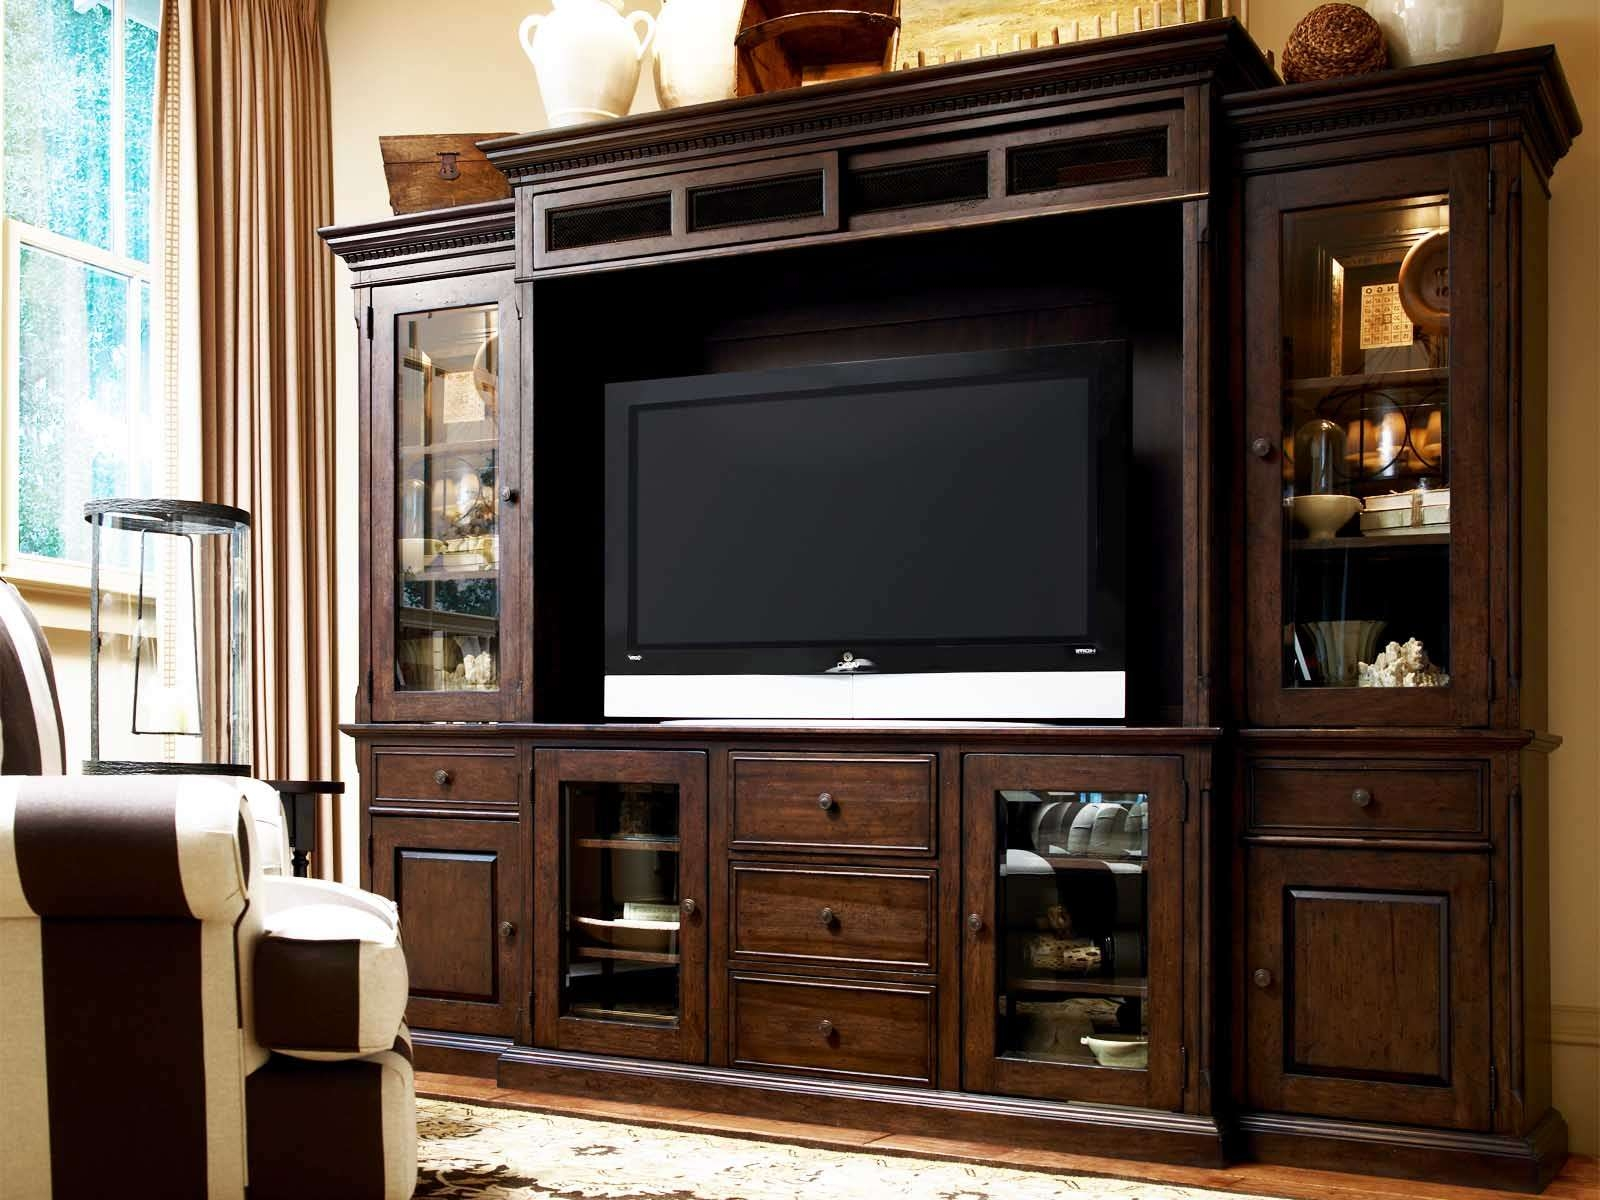 Dark Brown Wooden Tv Cabinet With Doors And Drawers On The Floor With Regard To Wooden Tv Cabinets With Glass Doors (View 2 of 20)